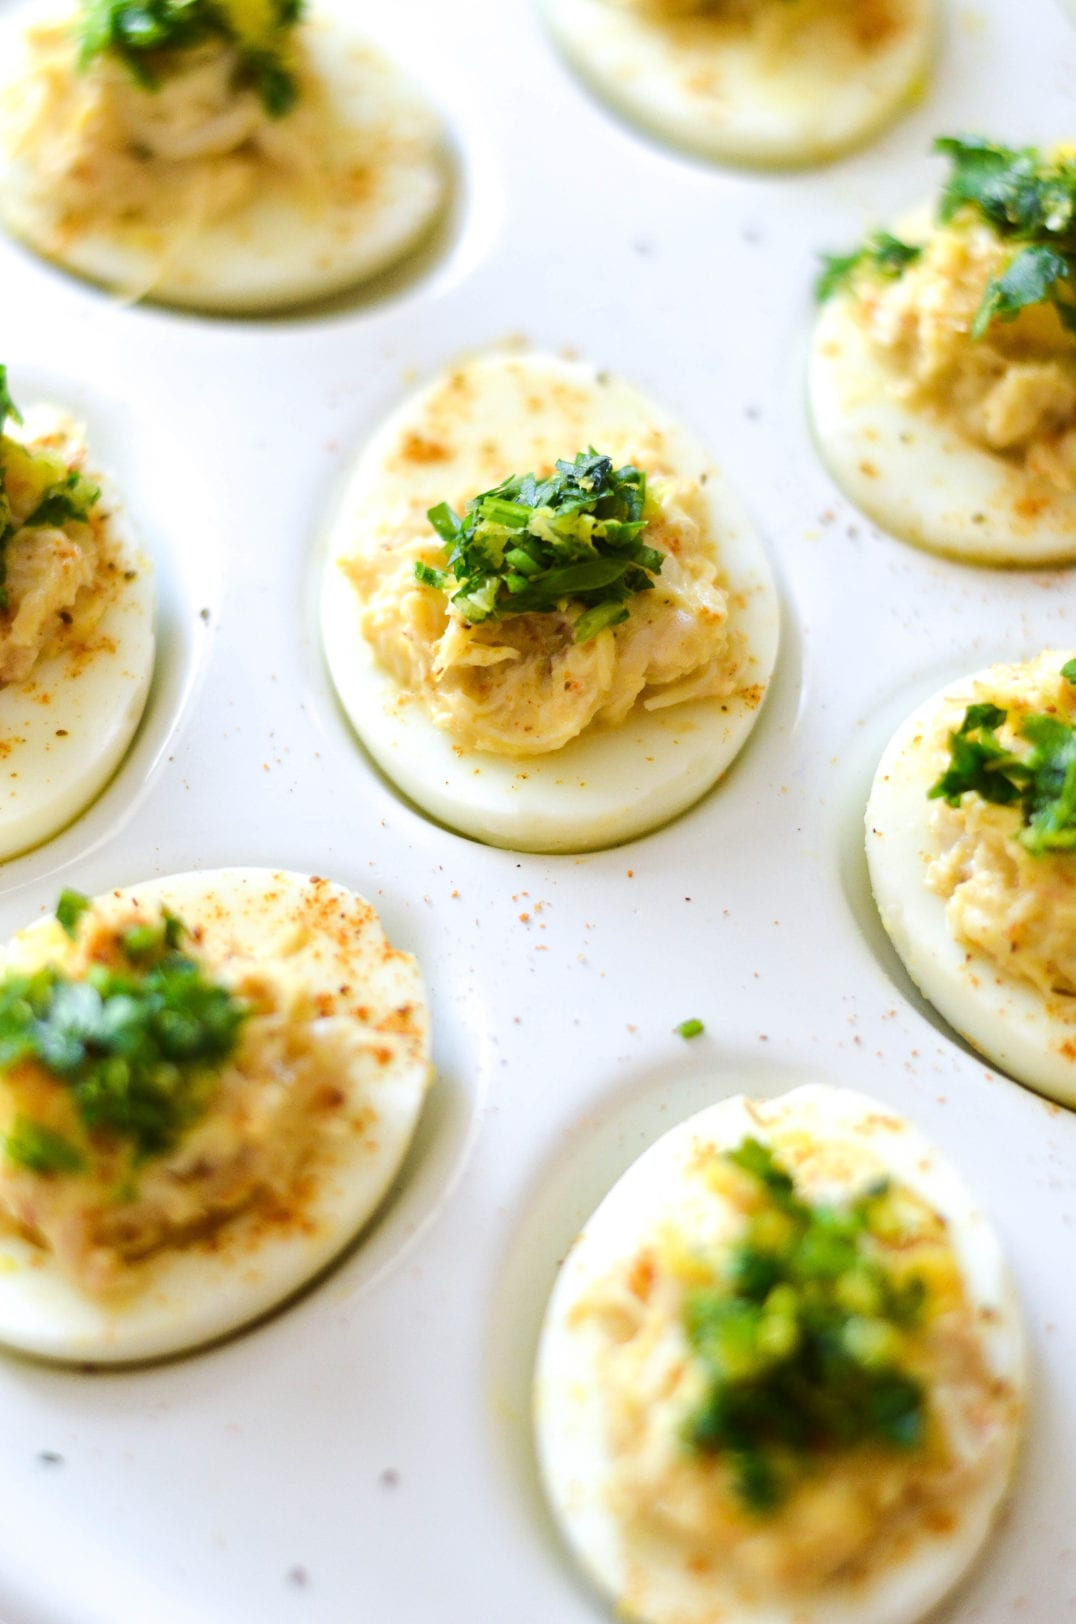 Crabby Deviled Eggs With Tarragon Gremolata